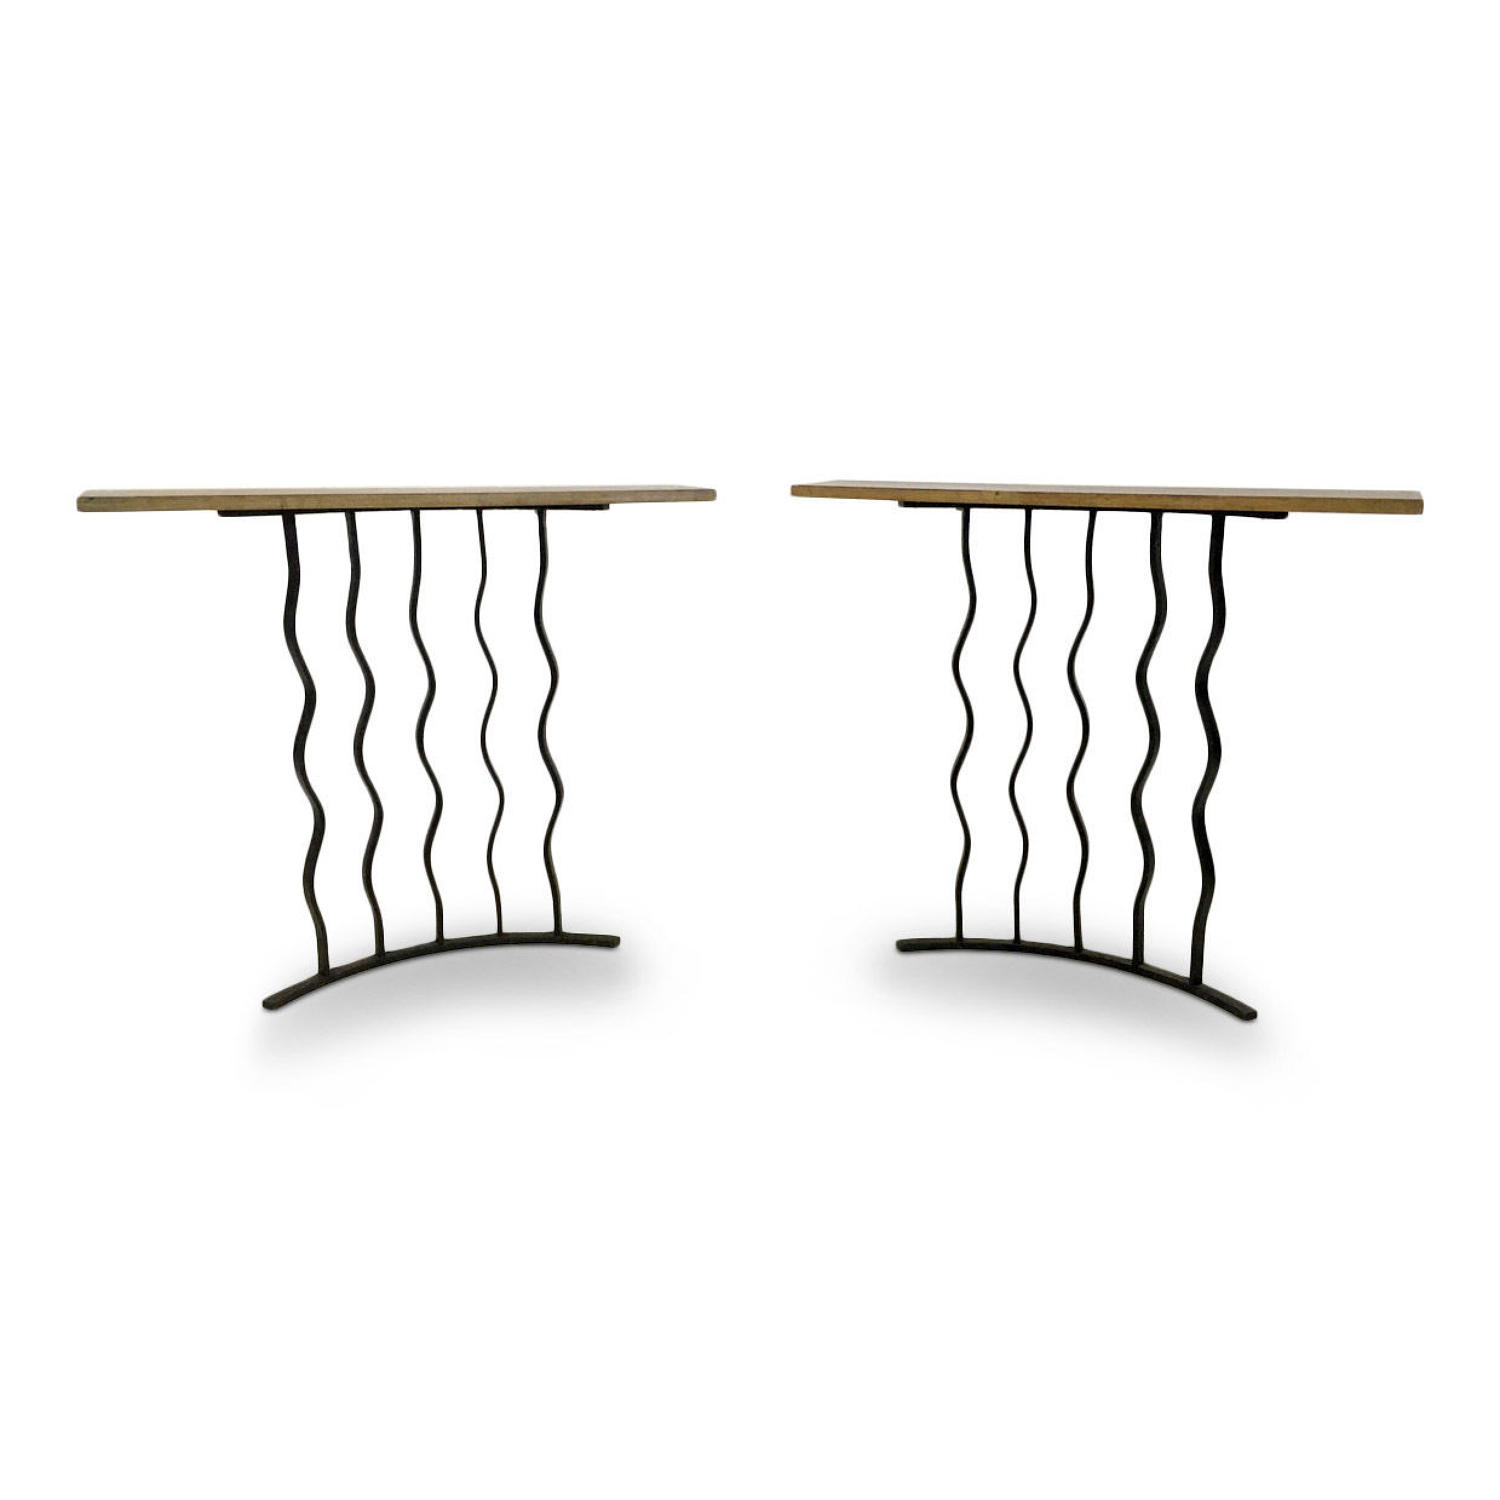 A pair of wrought iron console tables with oak tops